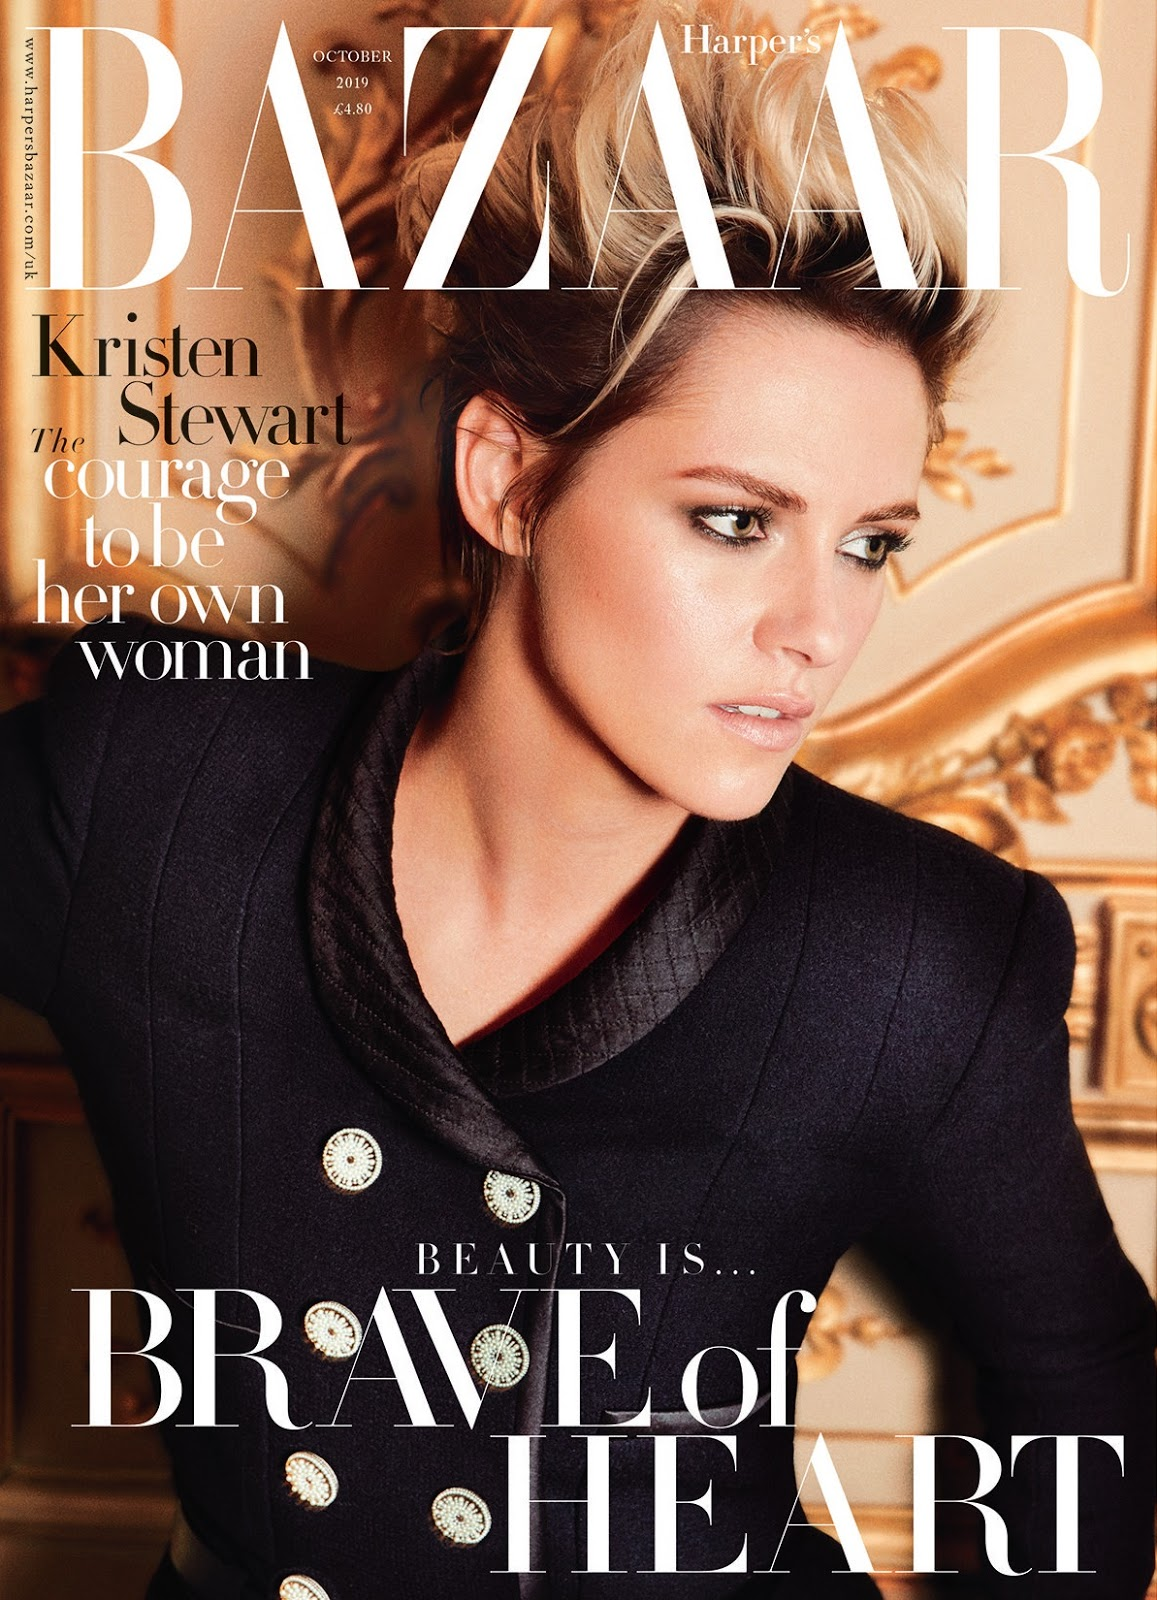 Kristen Stewart by Alexi Lubomirski for Harpers Bazaar UK October 2019  (1).jpg